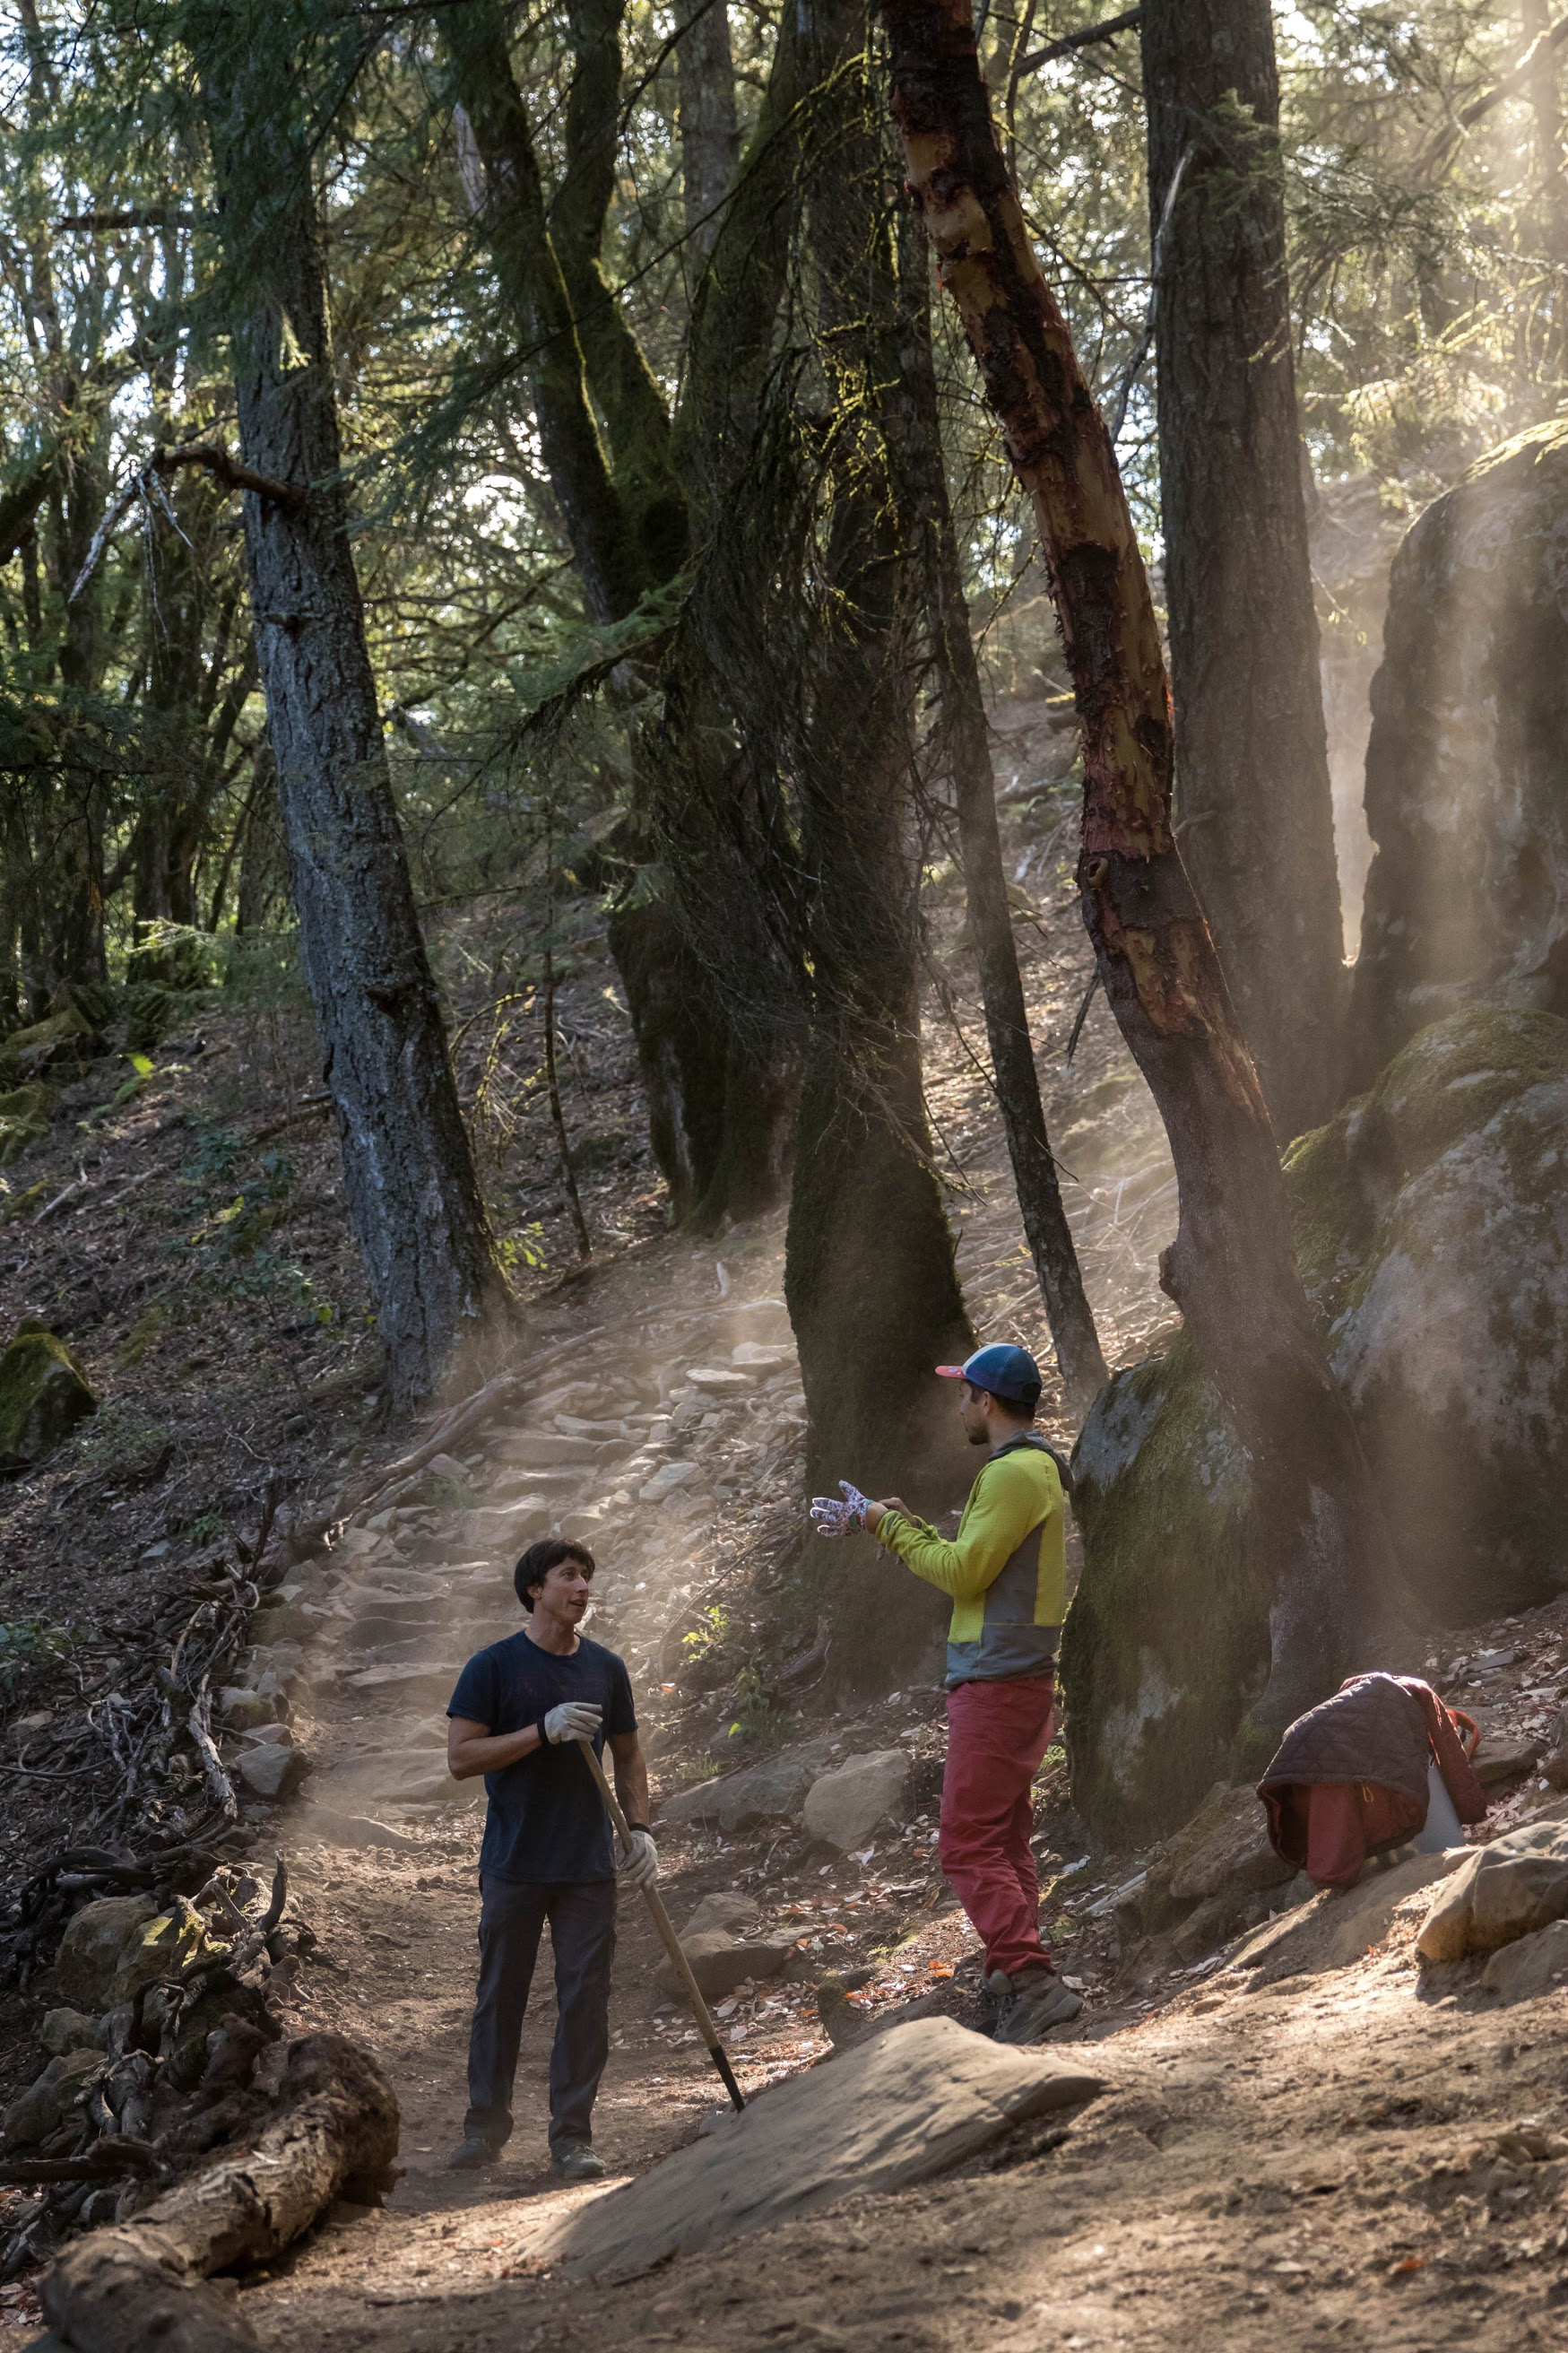 Two volunteers discussing trail restoration in a forest setting. The trail bends around a rock formation.